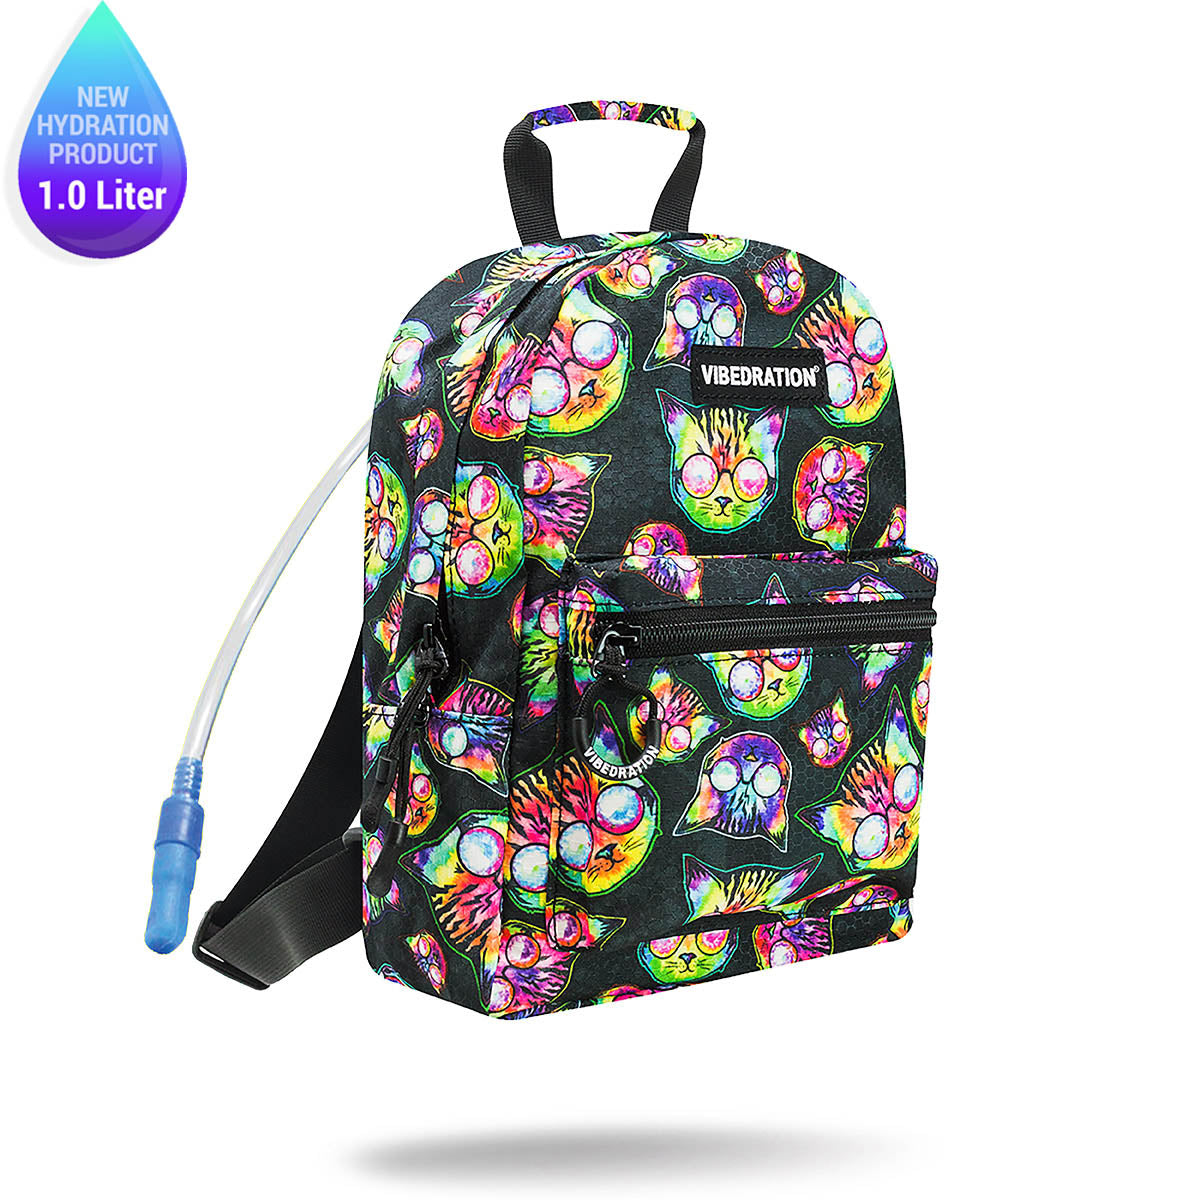 7106bf6633b Cat Printed Mini 1.0 Liter Backpack for Raves   Festivals  Meow ...